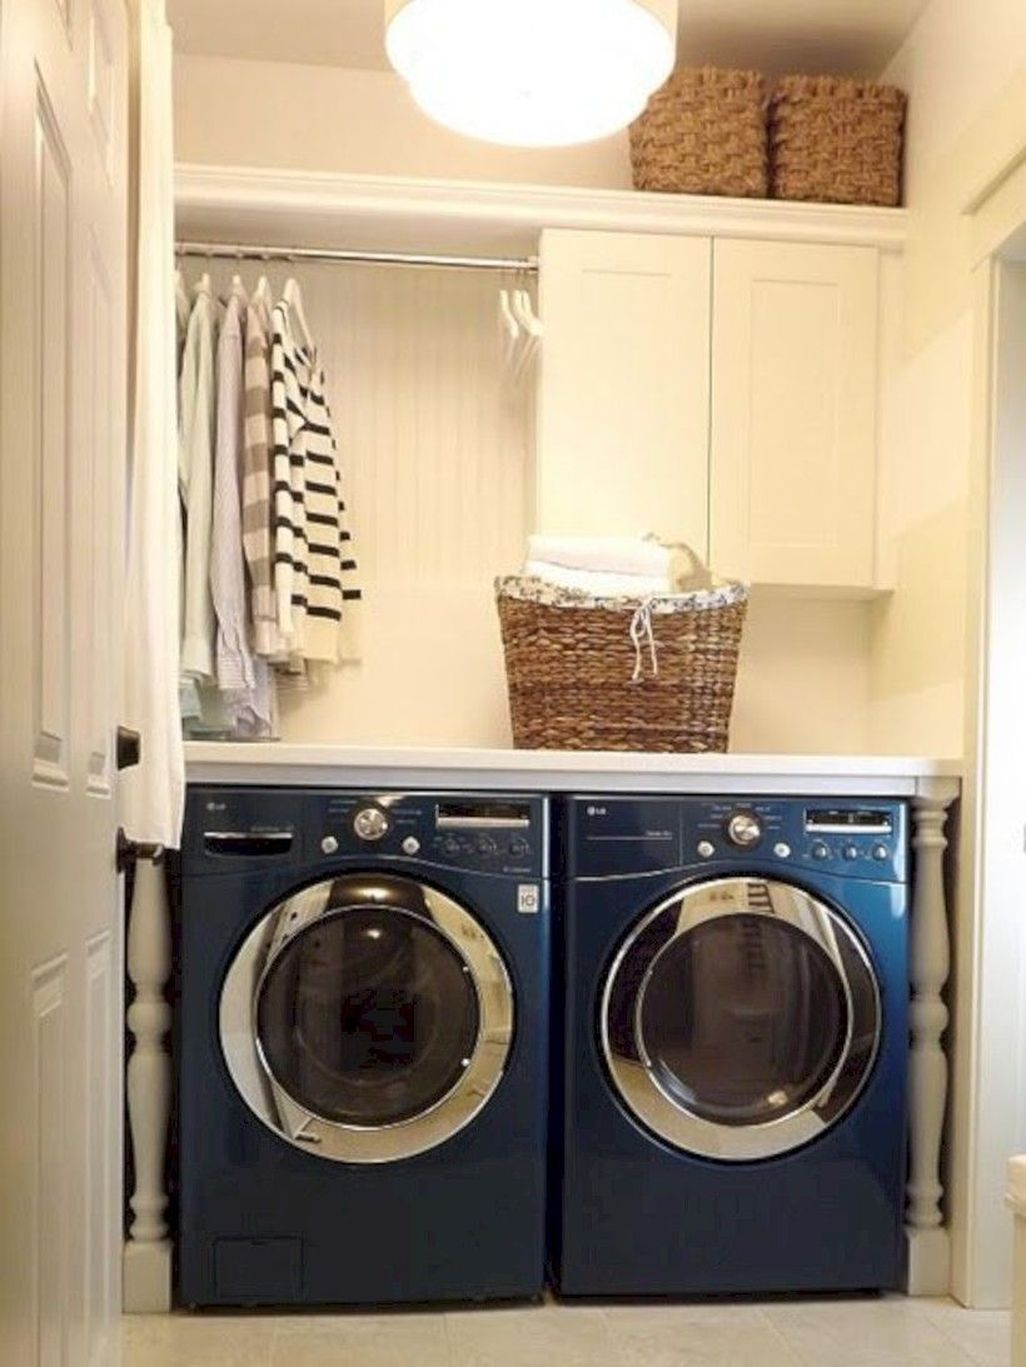 Modern Bat Remodel Laundry Room Ideas 03